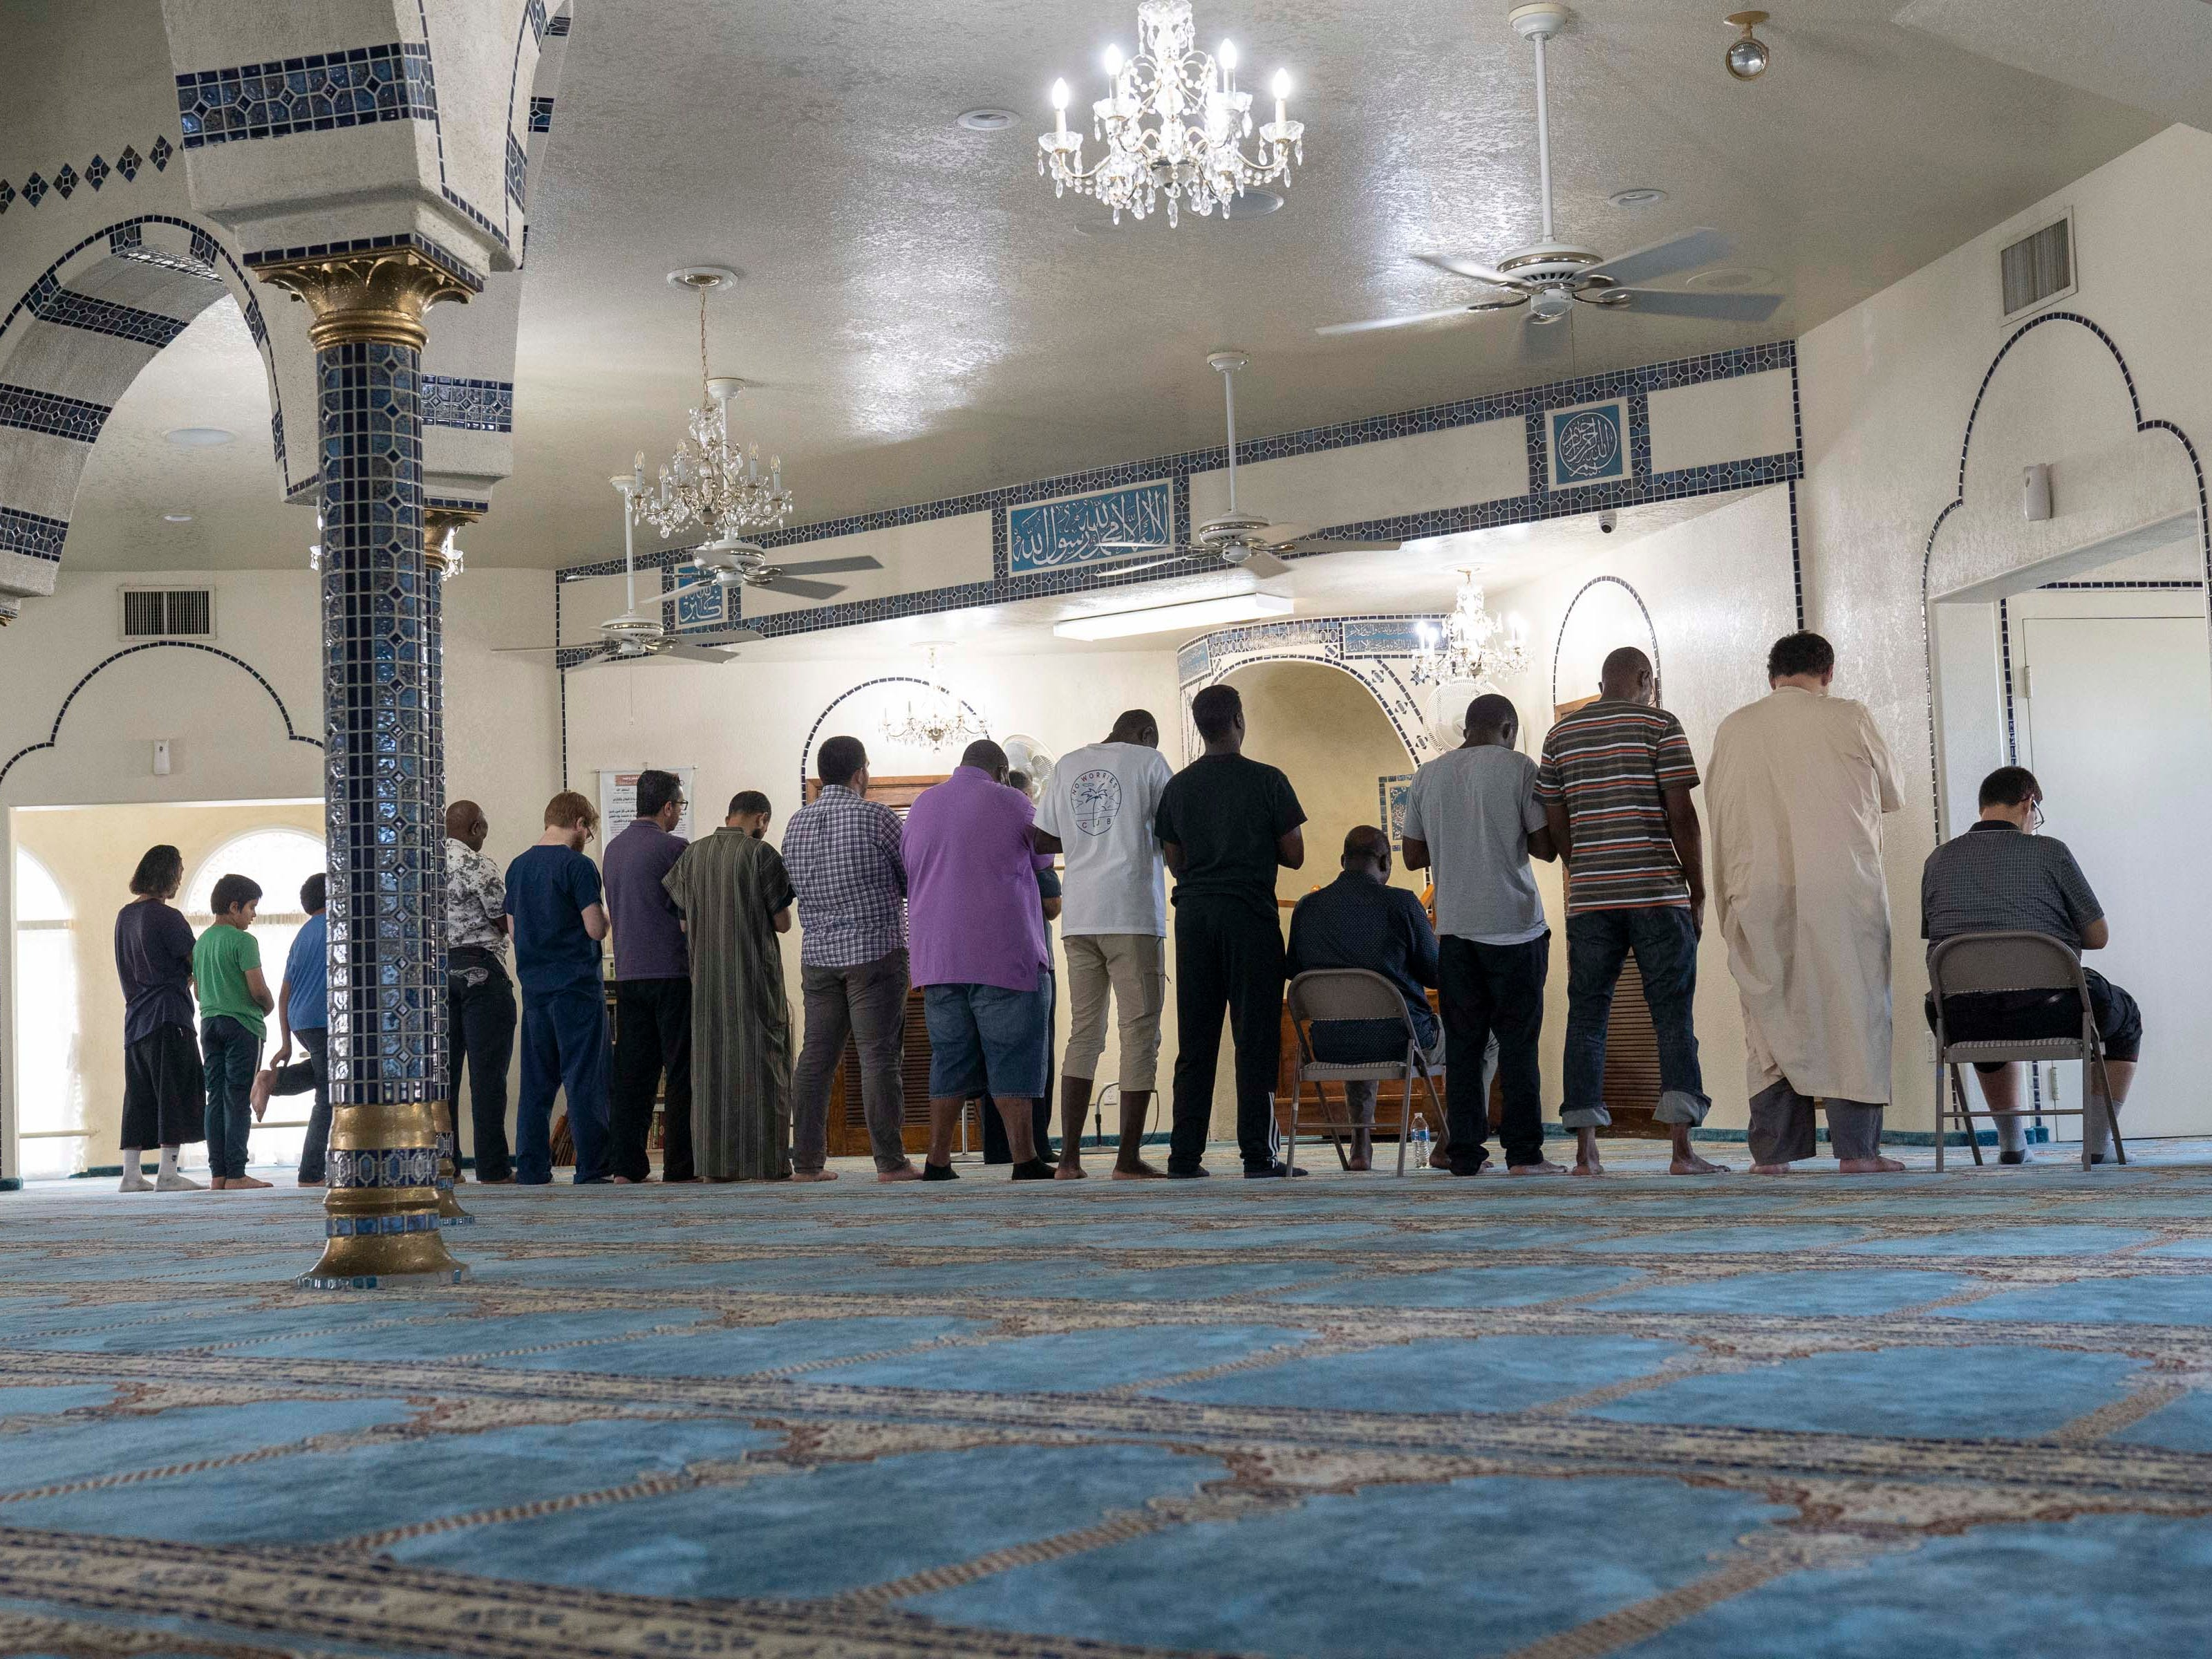 Muslim men pray during the evening prayer at Tempe Islamic Cultural Center.